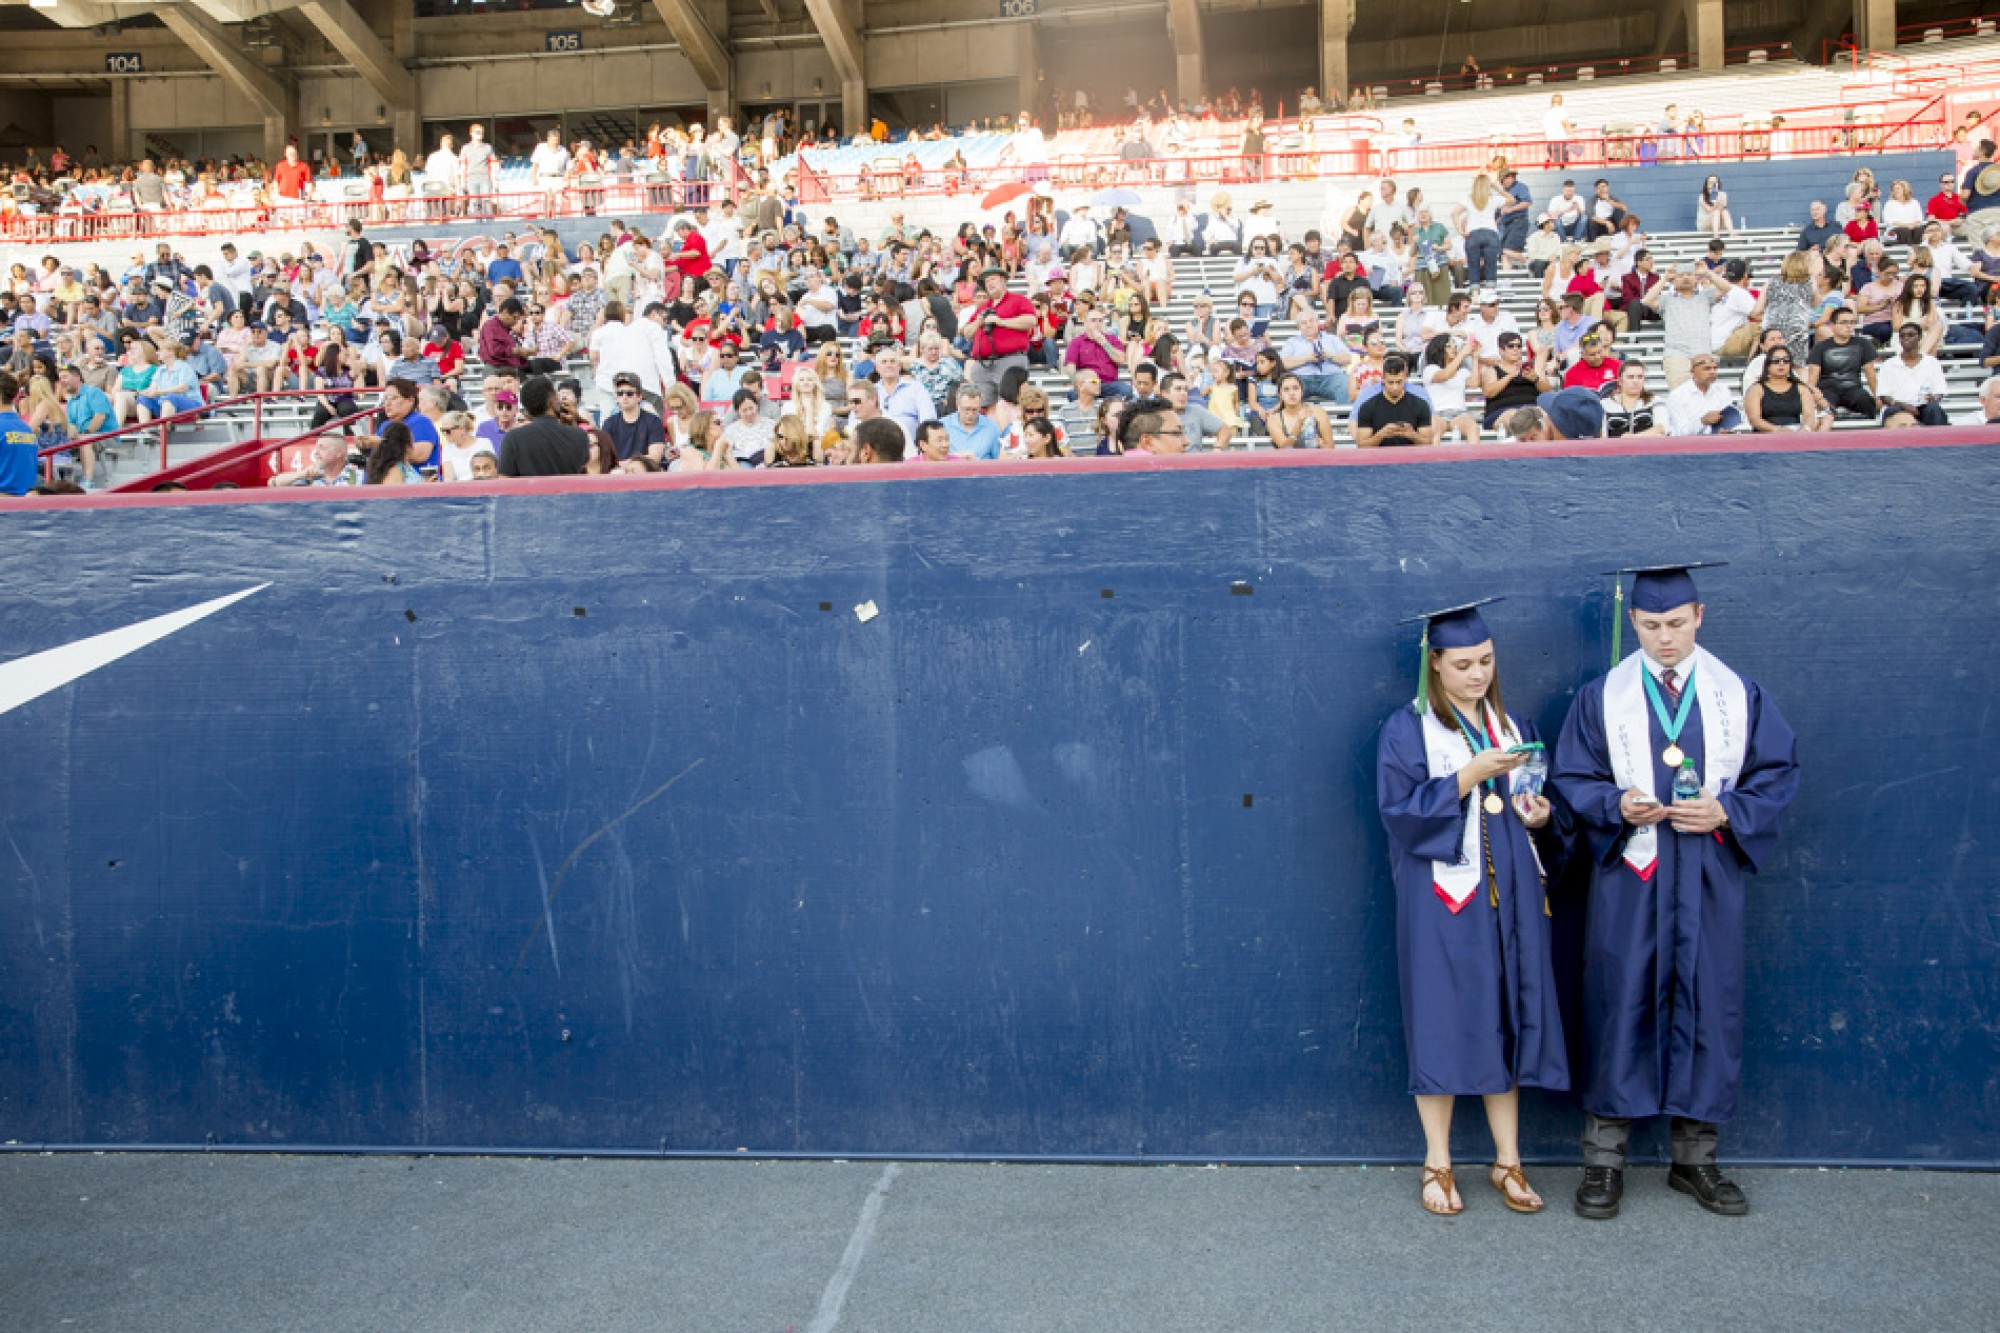 Physioiogy graduates Kayla Darris and Daniel Kitts waited for their friends to arrive.